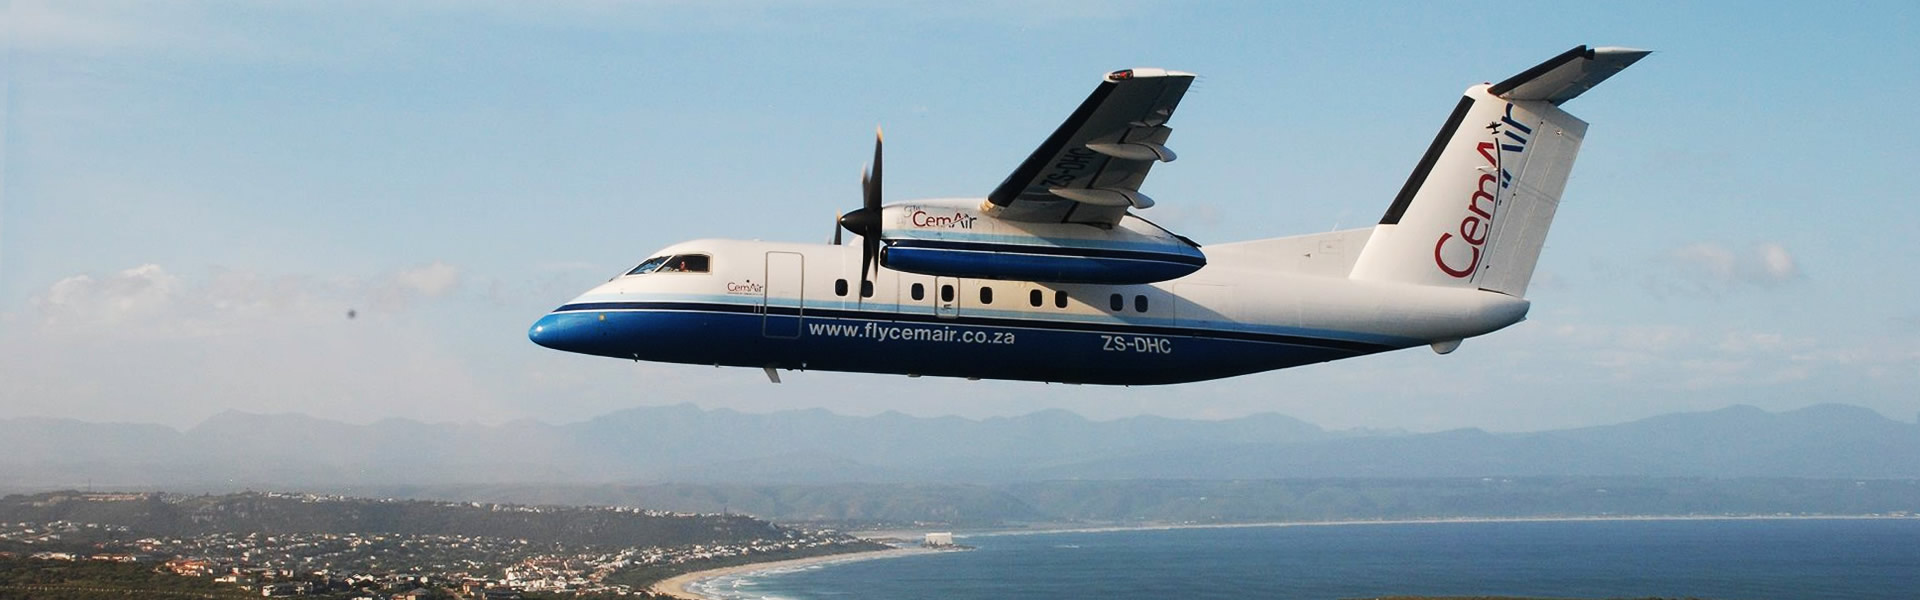 CemAir flies to Plett daily from OR Tambo and Cape Town